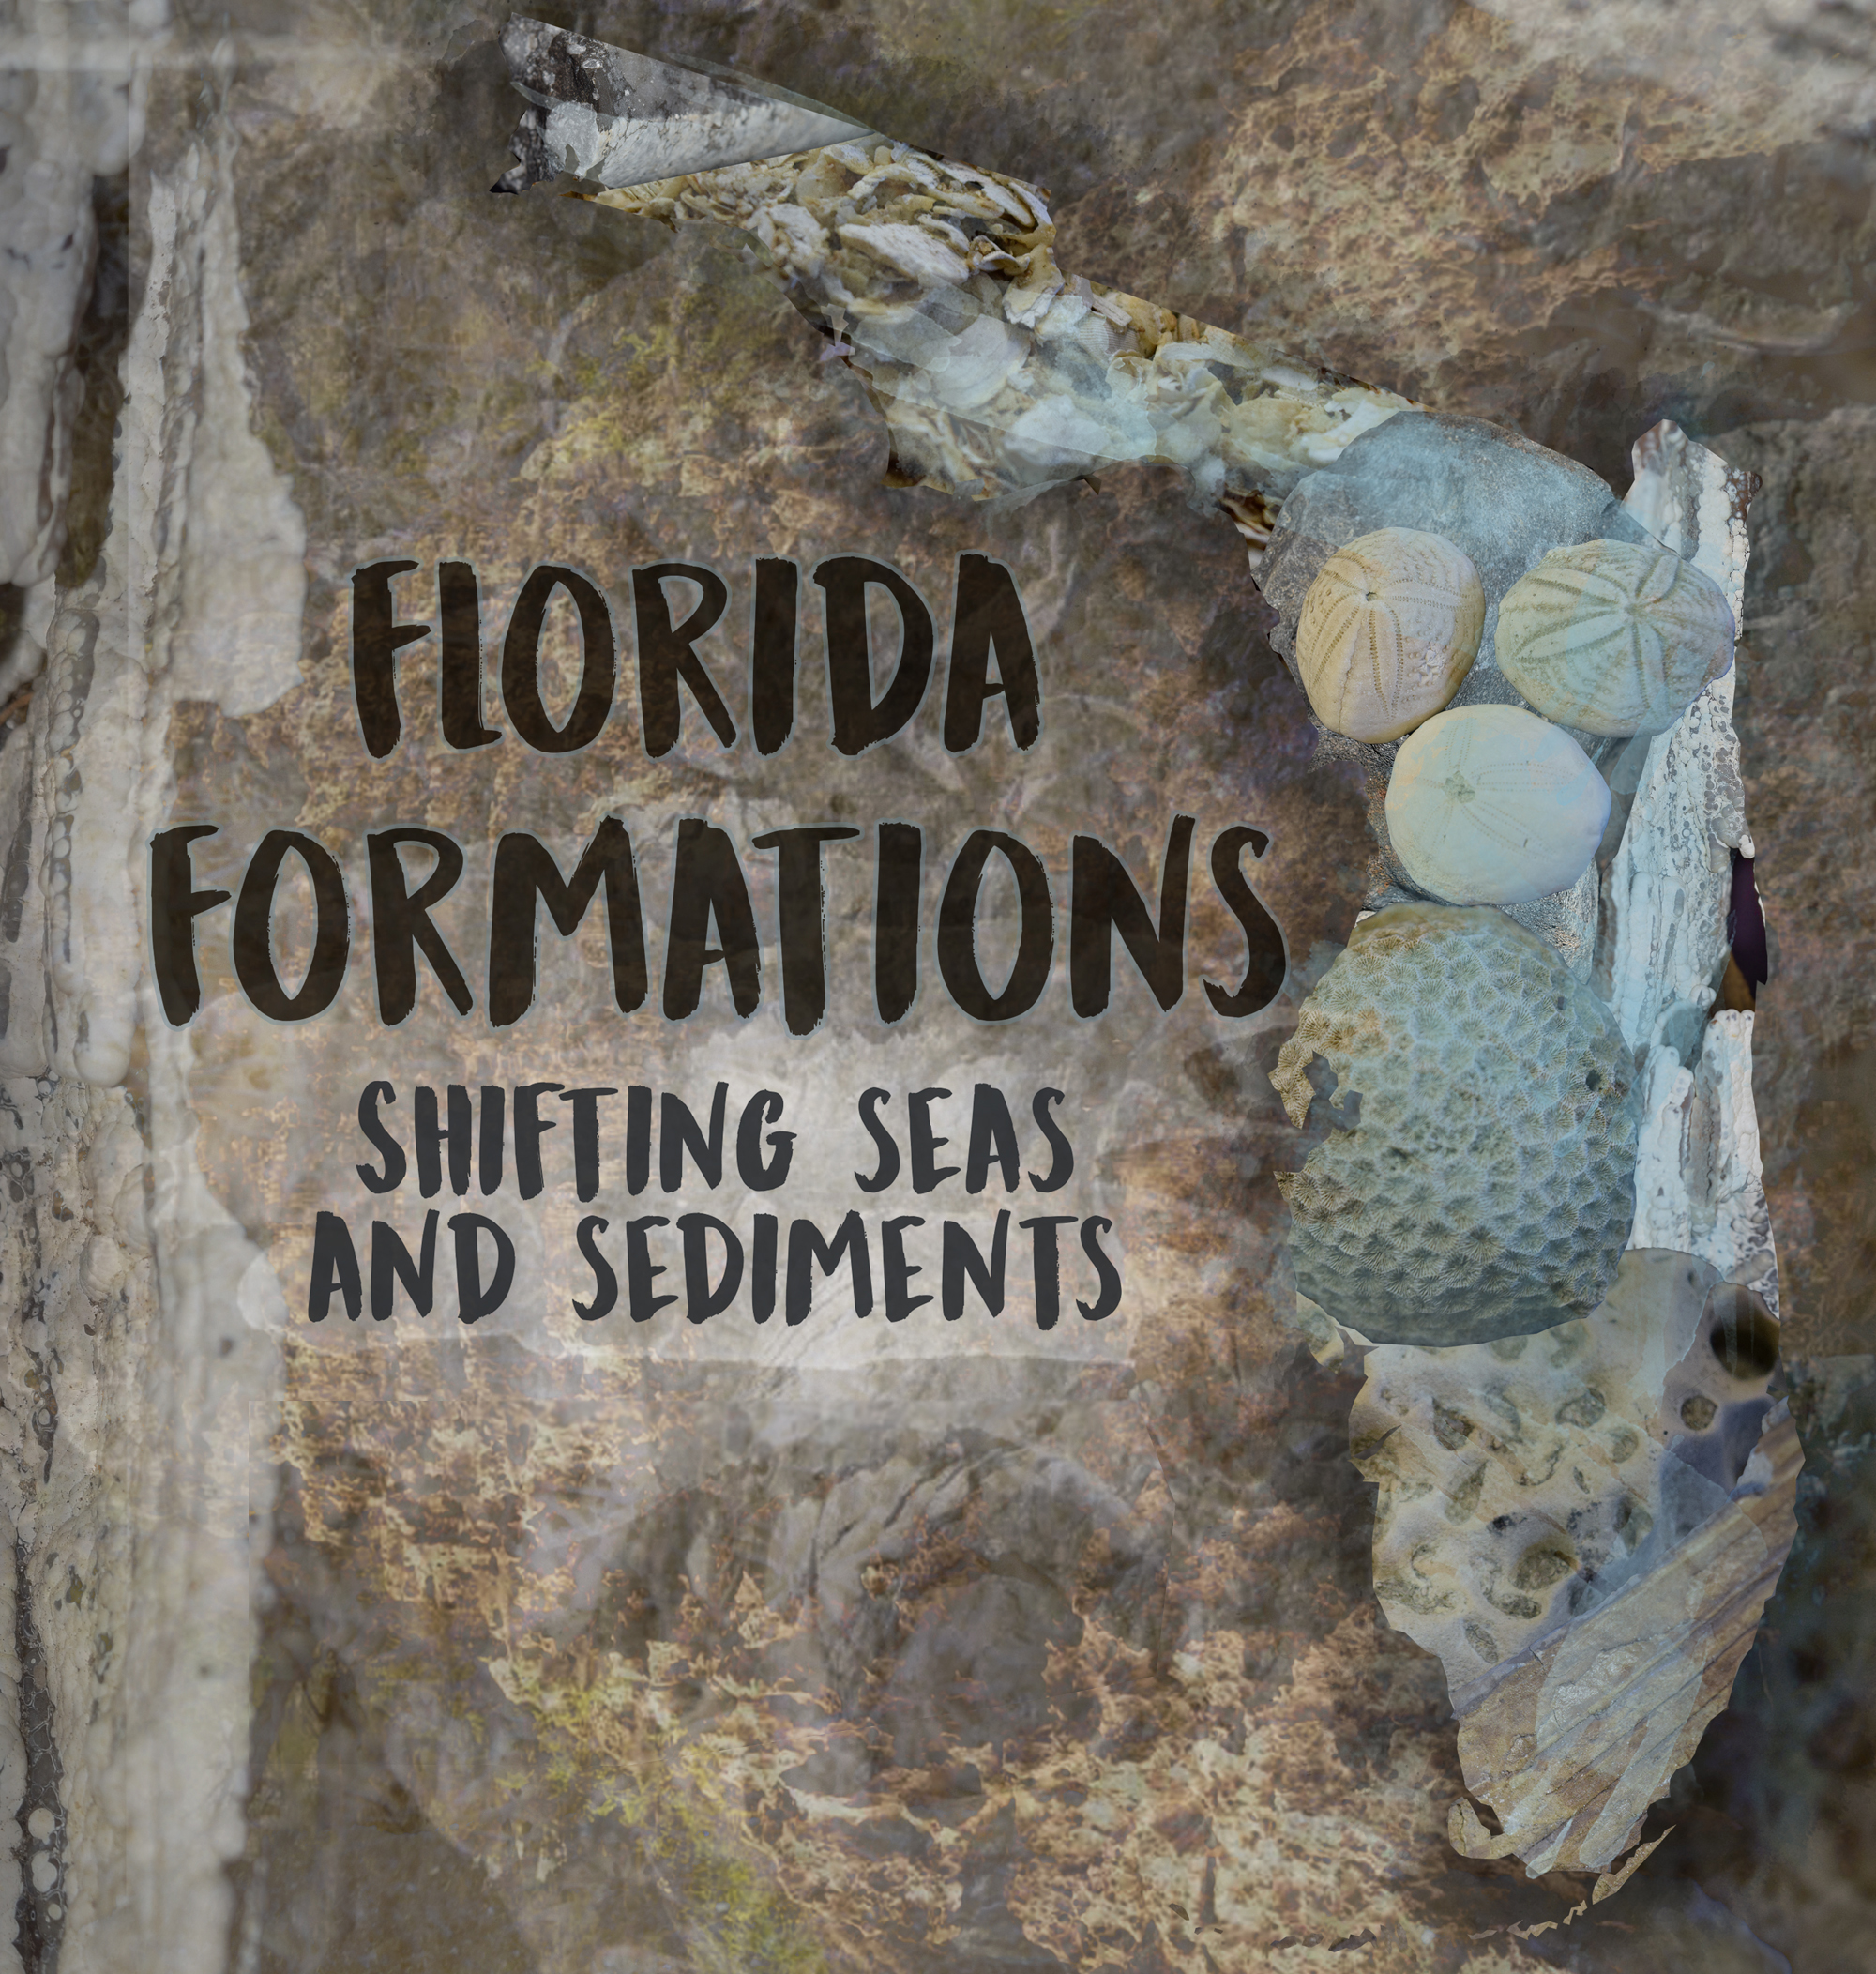 Florida Formations exhibit poster